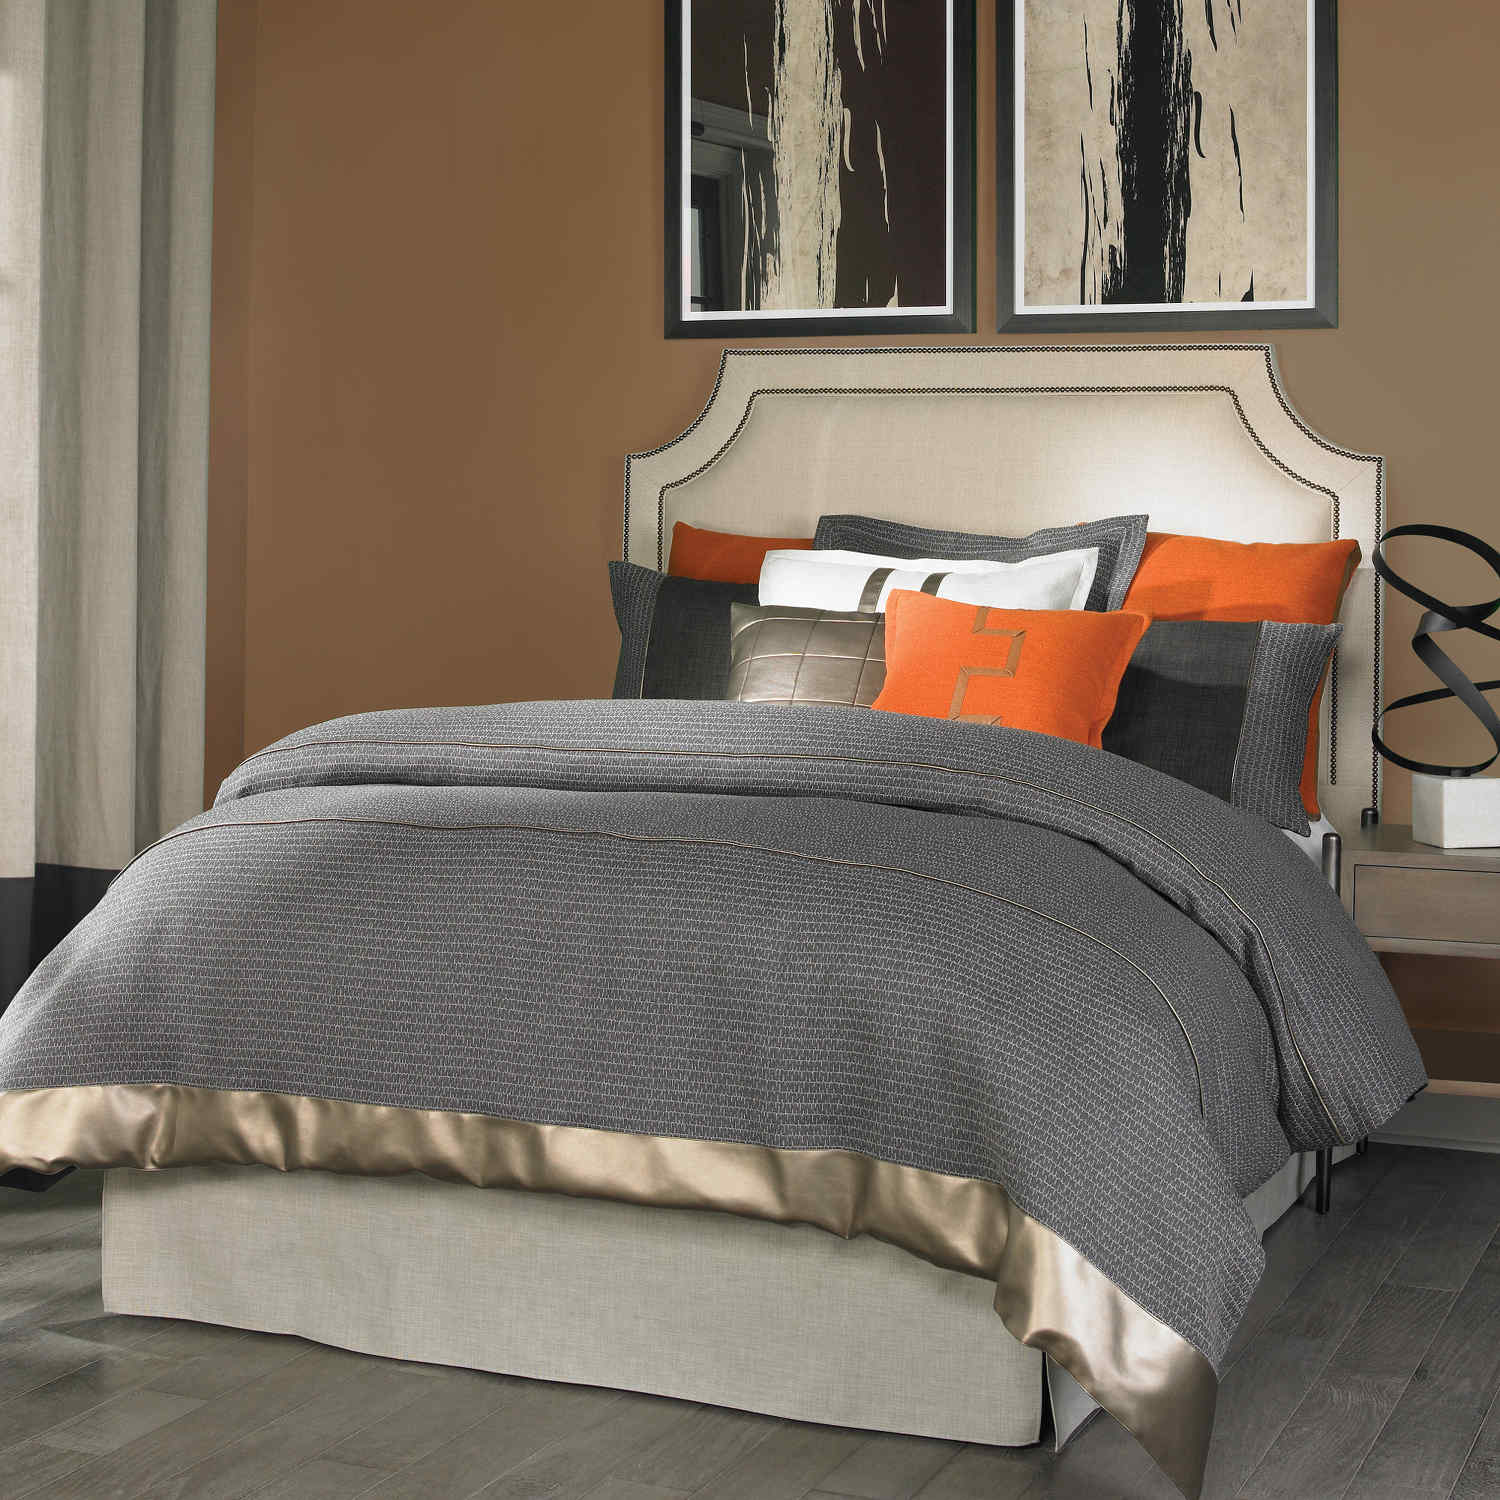 Wildcat Territory Bedding - Eli Collection Swatch